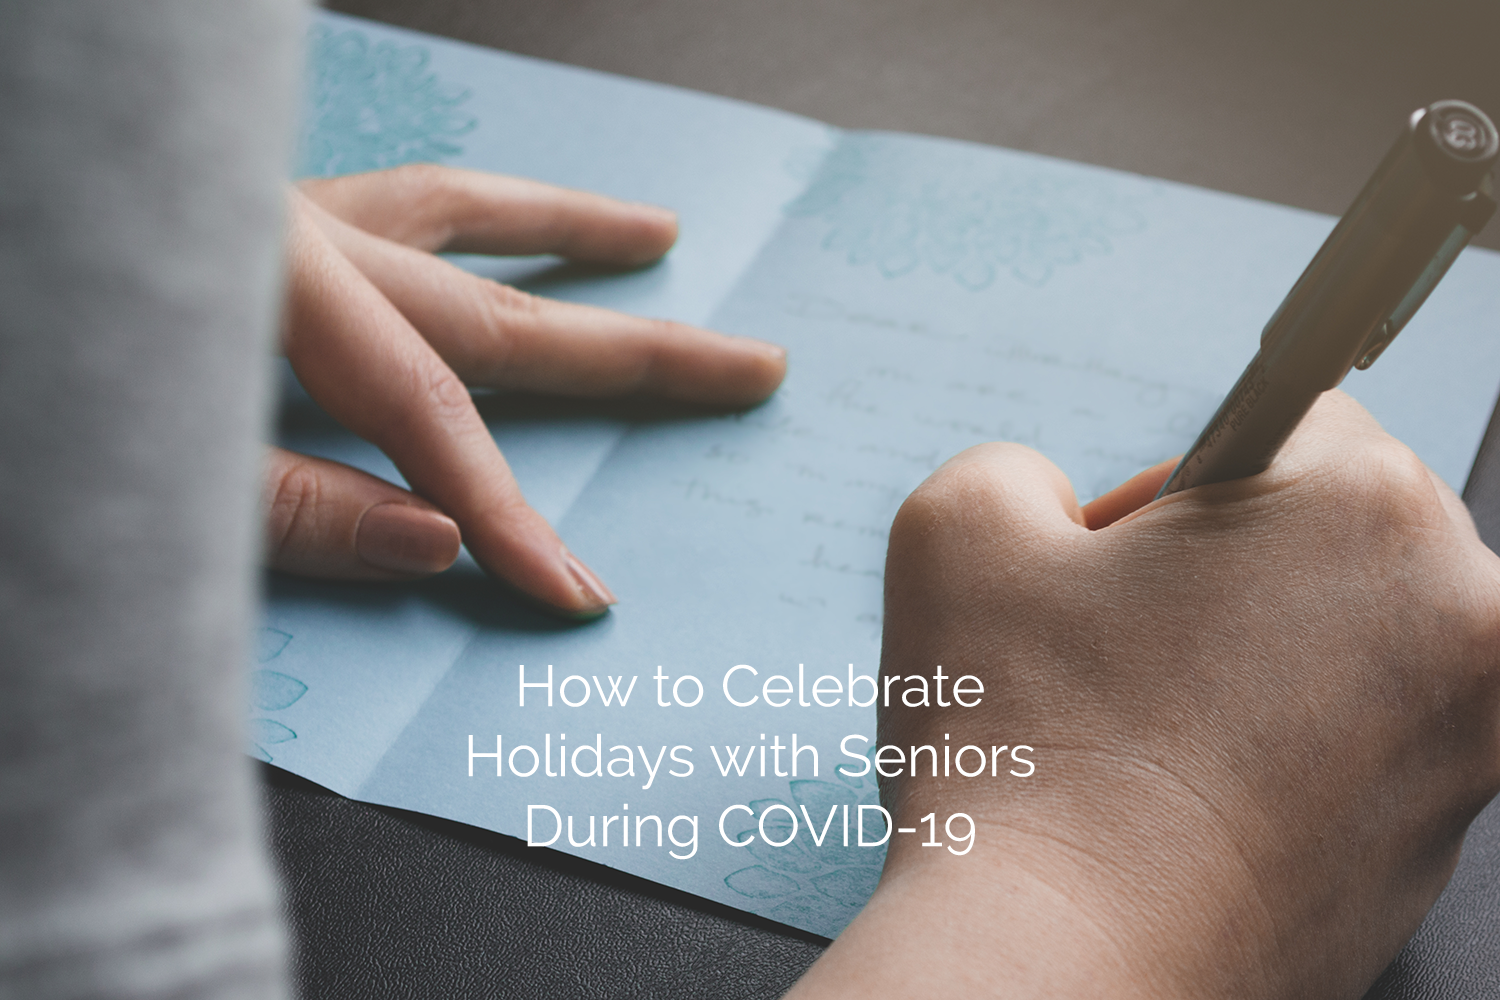 How to Celebrate Holidays with Seniors During COVID-19